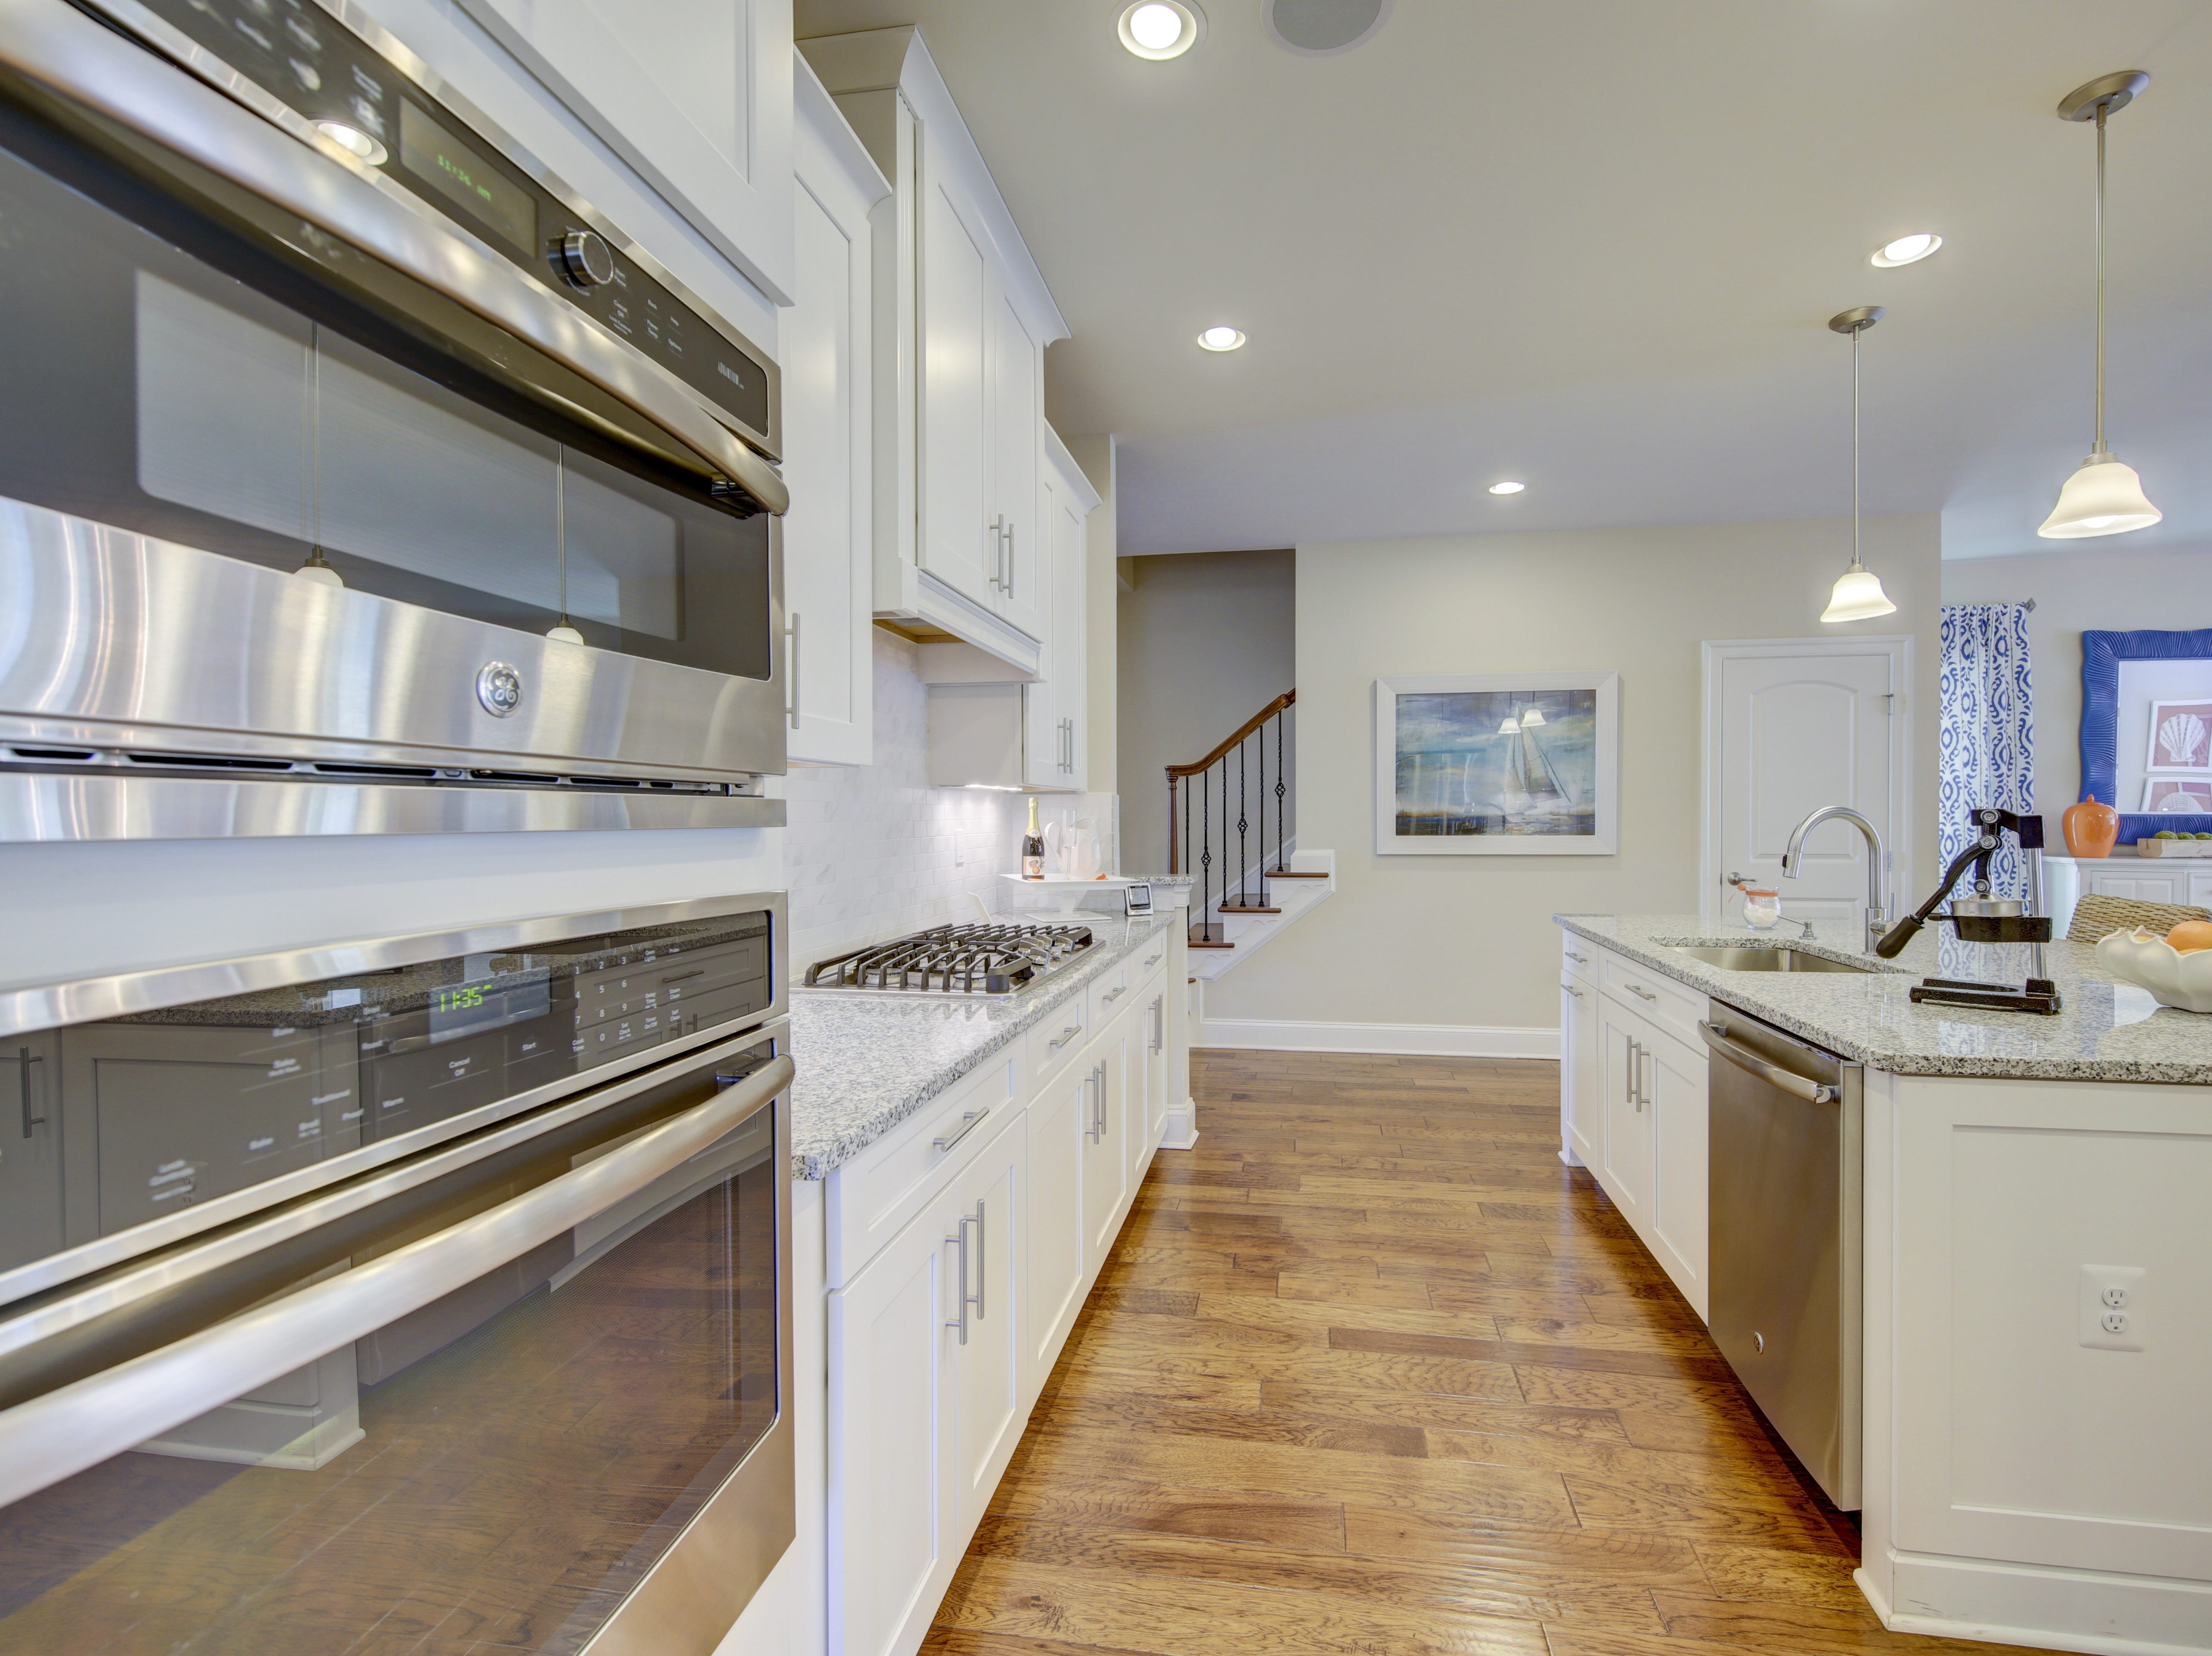 The kitchen of the model home in the Overlook at Selbyville has stainless steel appliances and a center island.